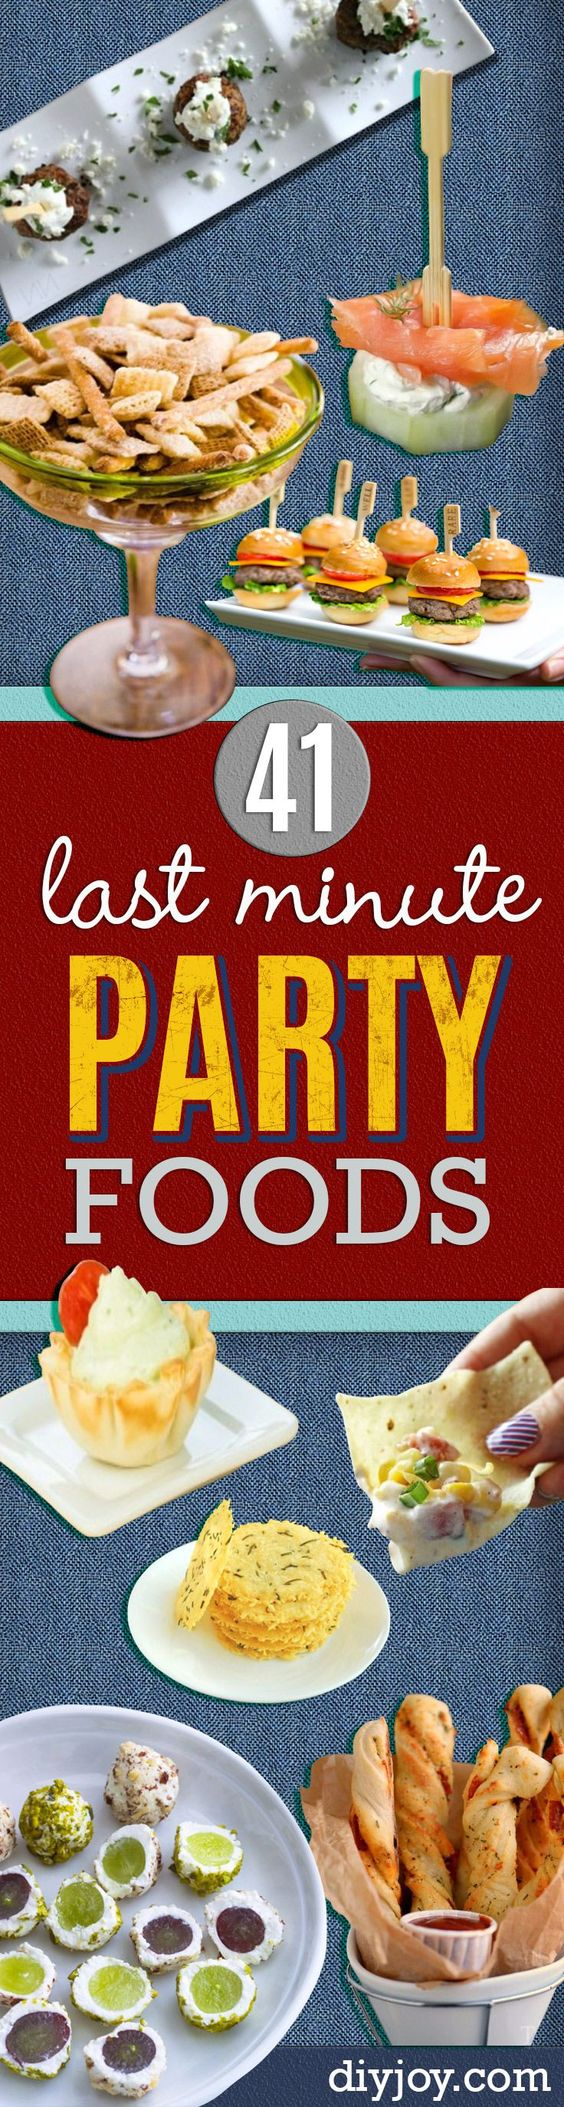 41 last minute party foods labor day fun drinks and